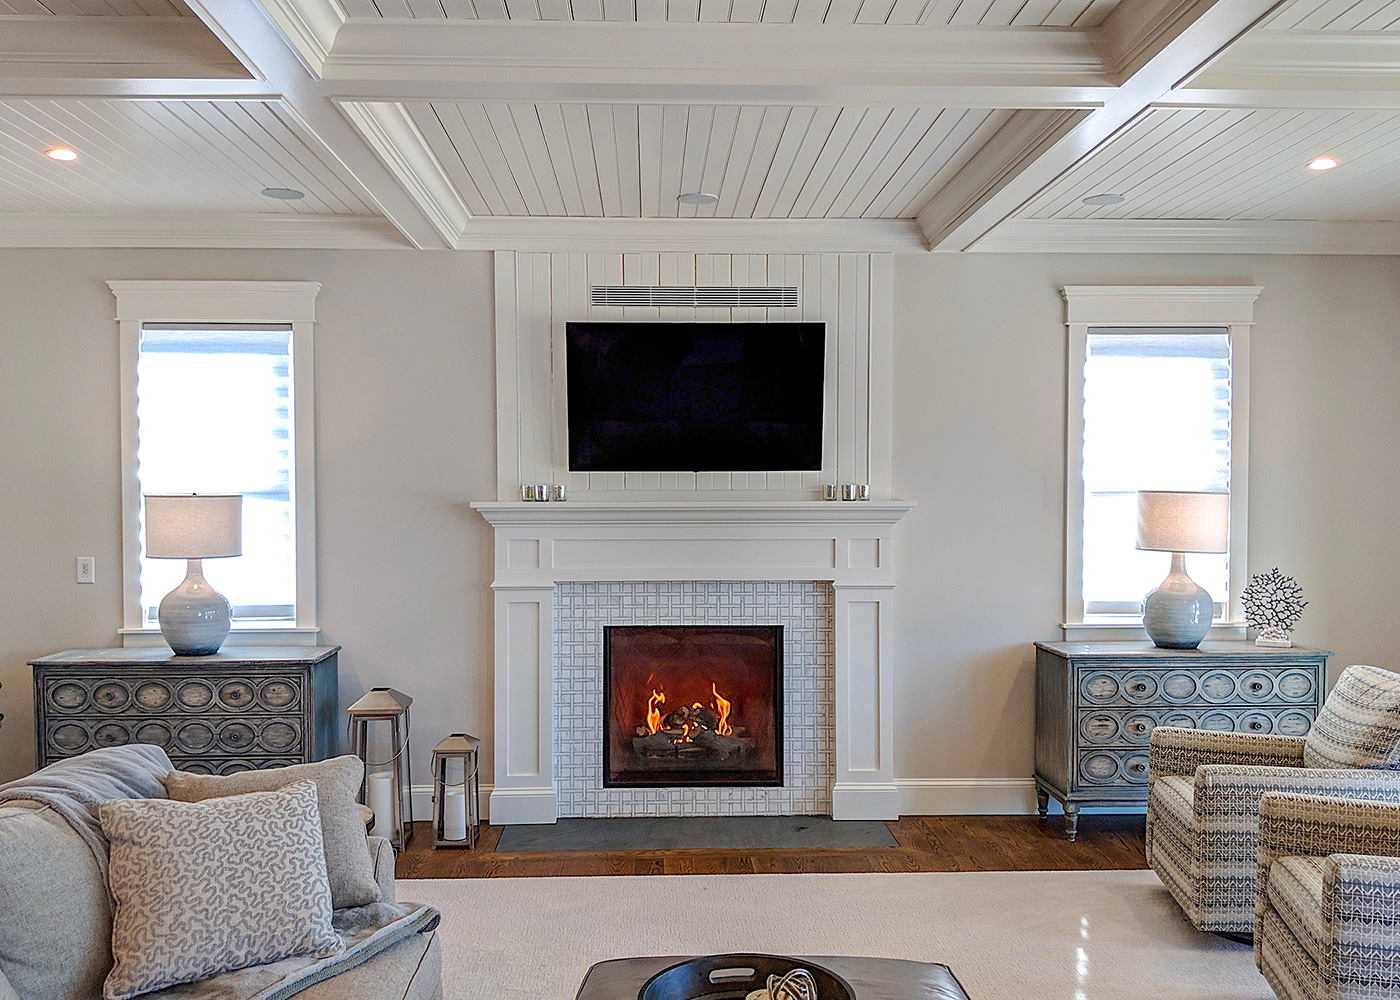 Home renovation by Longfellow Design Build of Cape Cod